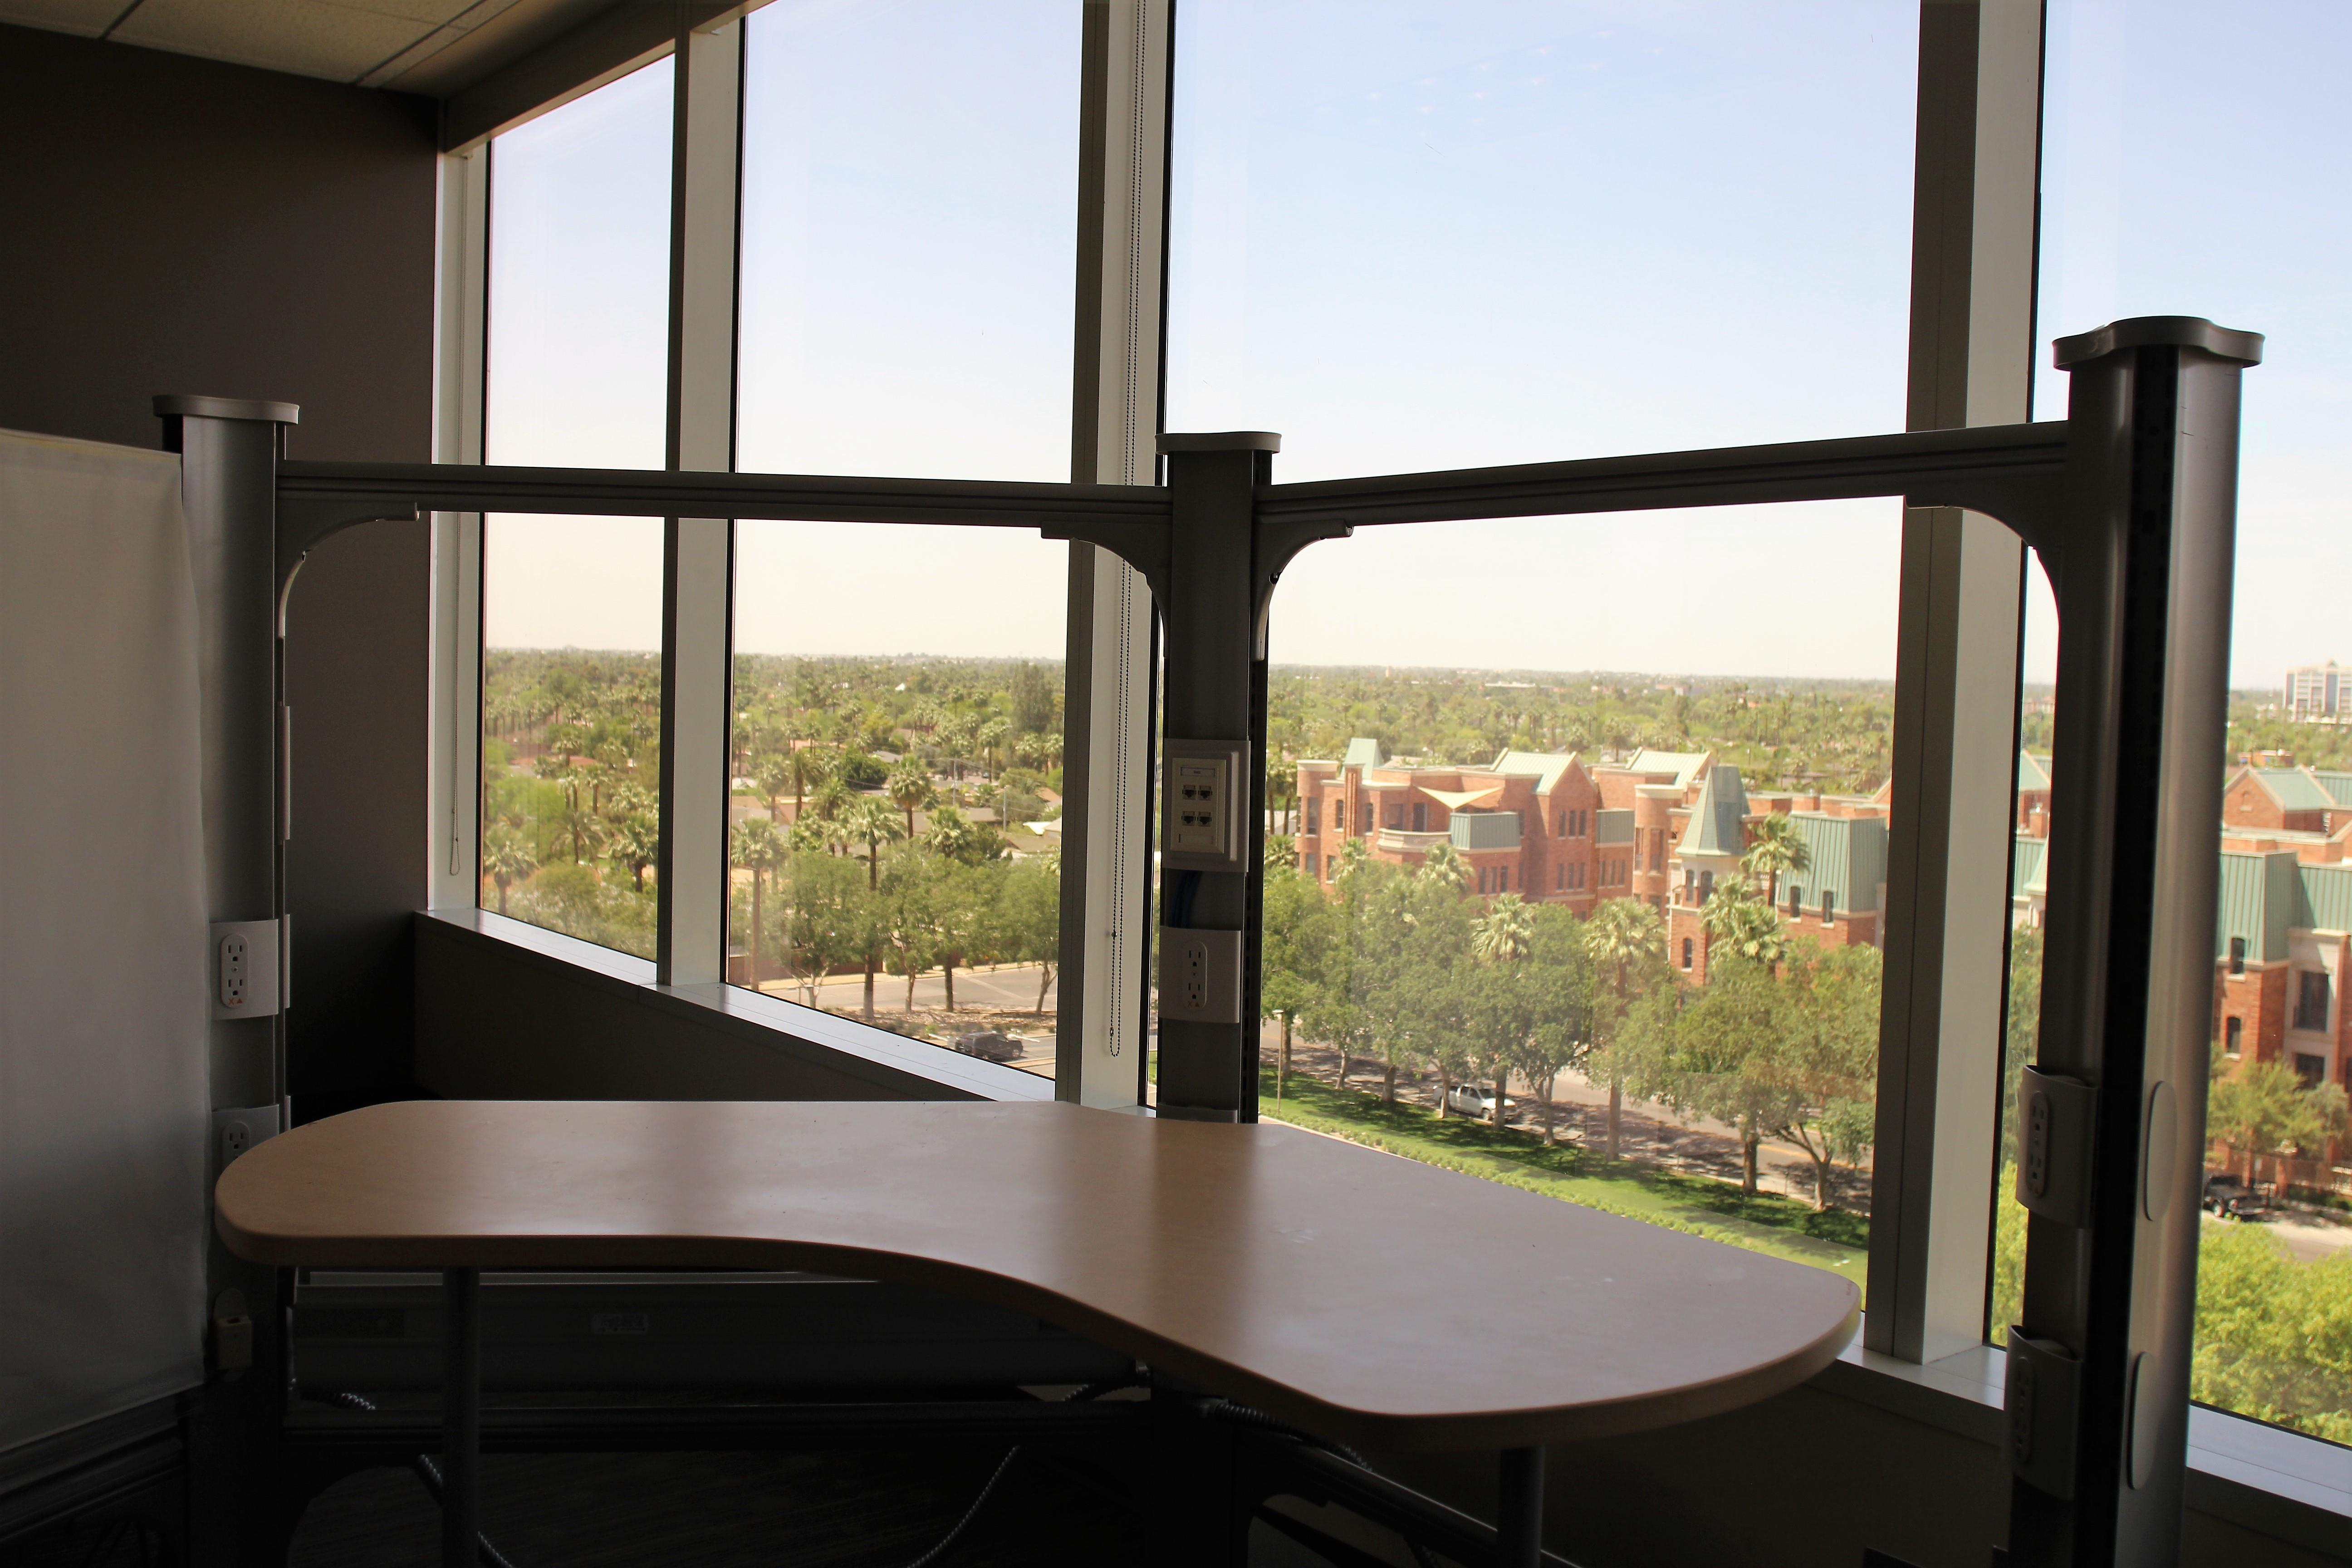 Central Art Plaza Sublease - Suite 600-1850 N Central Ave